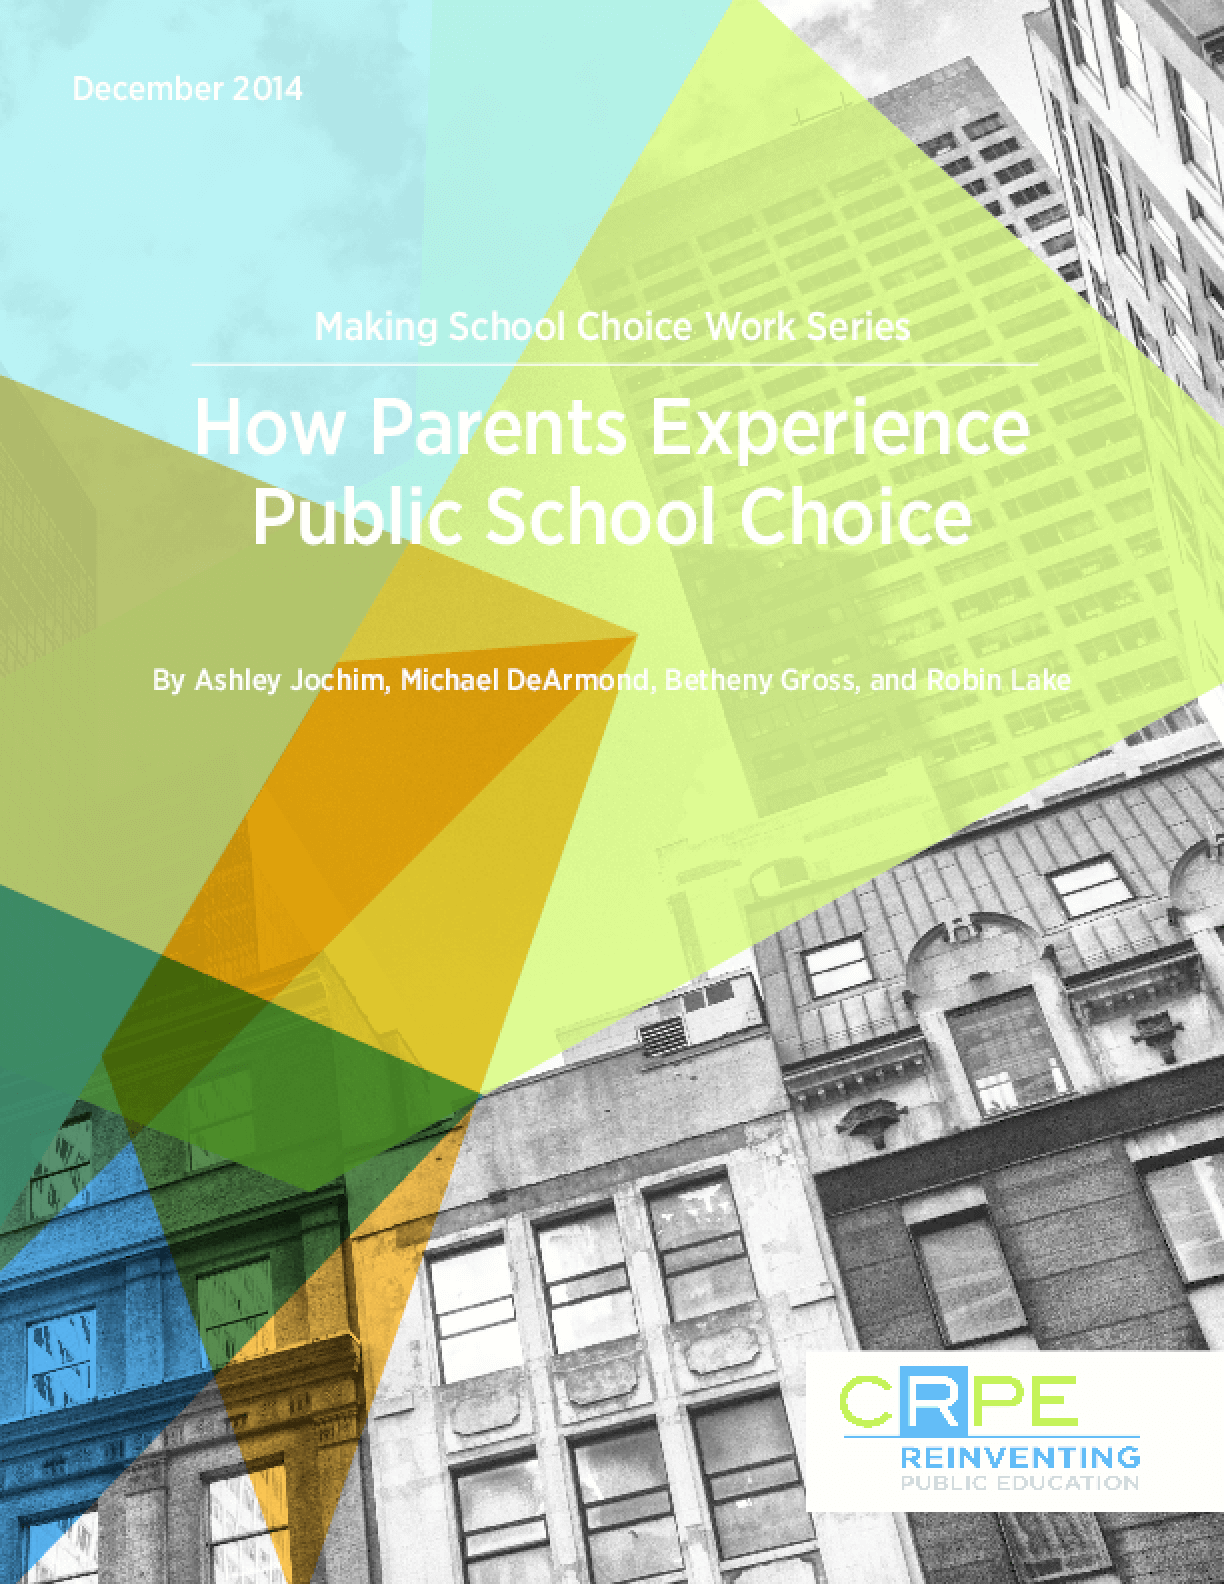 Making School Choice Work Series: How Parents Experience Public School Choice